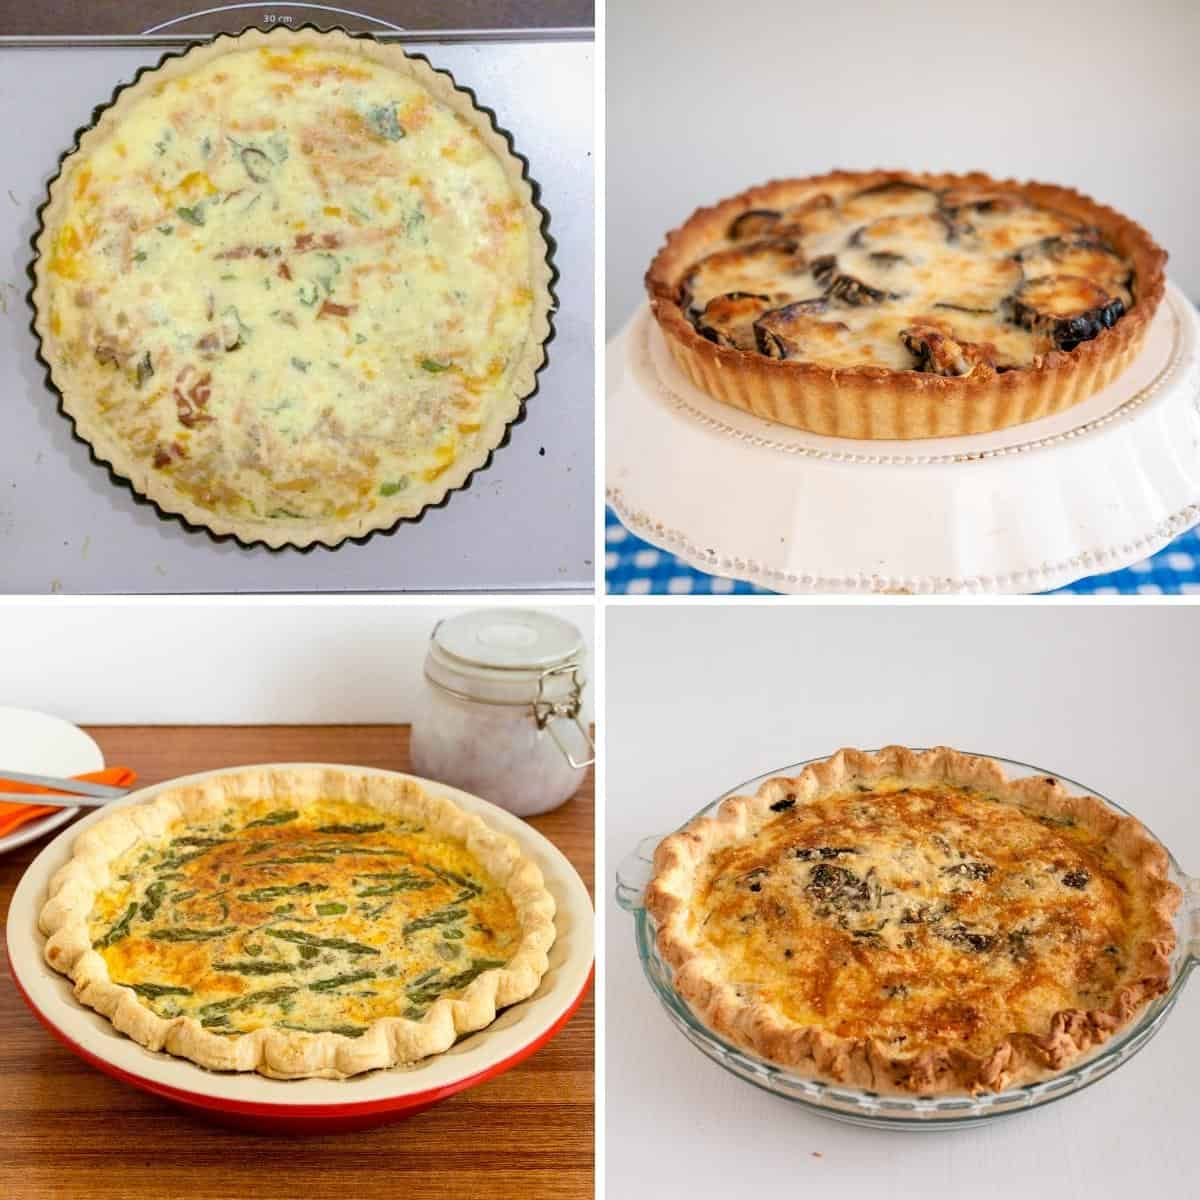 Four quiches made in different quiche pans.